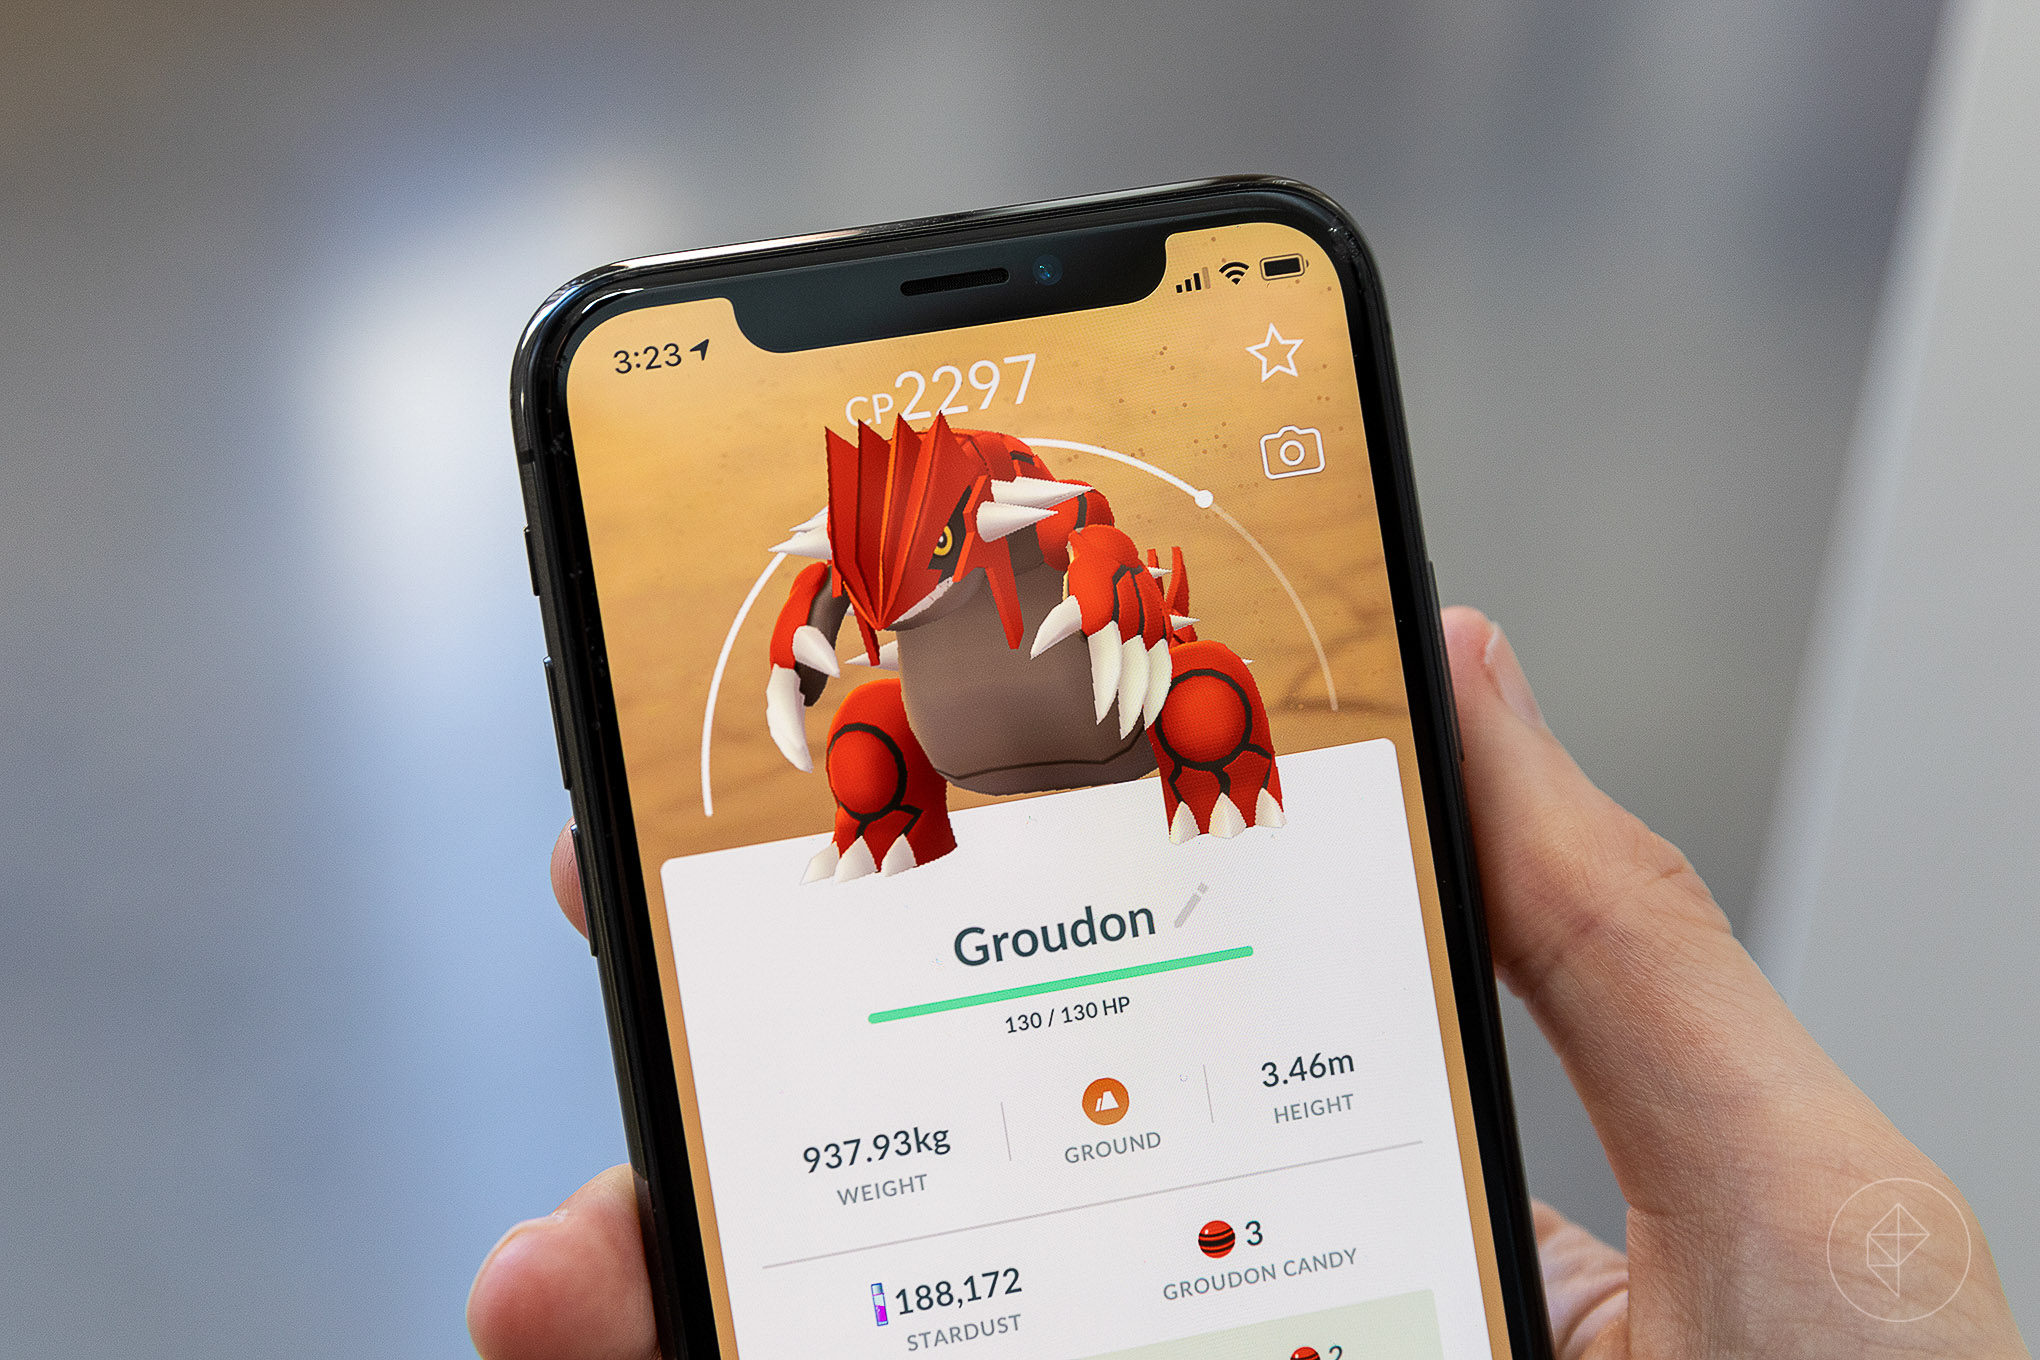 Cresselia, Kyogre, and Groudon return to Pokémon Go raids for June and July